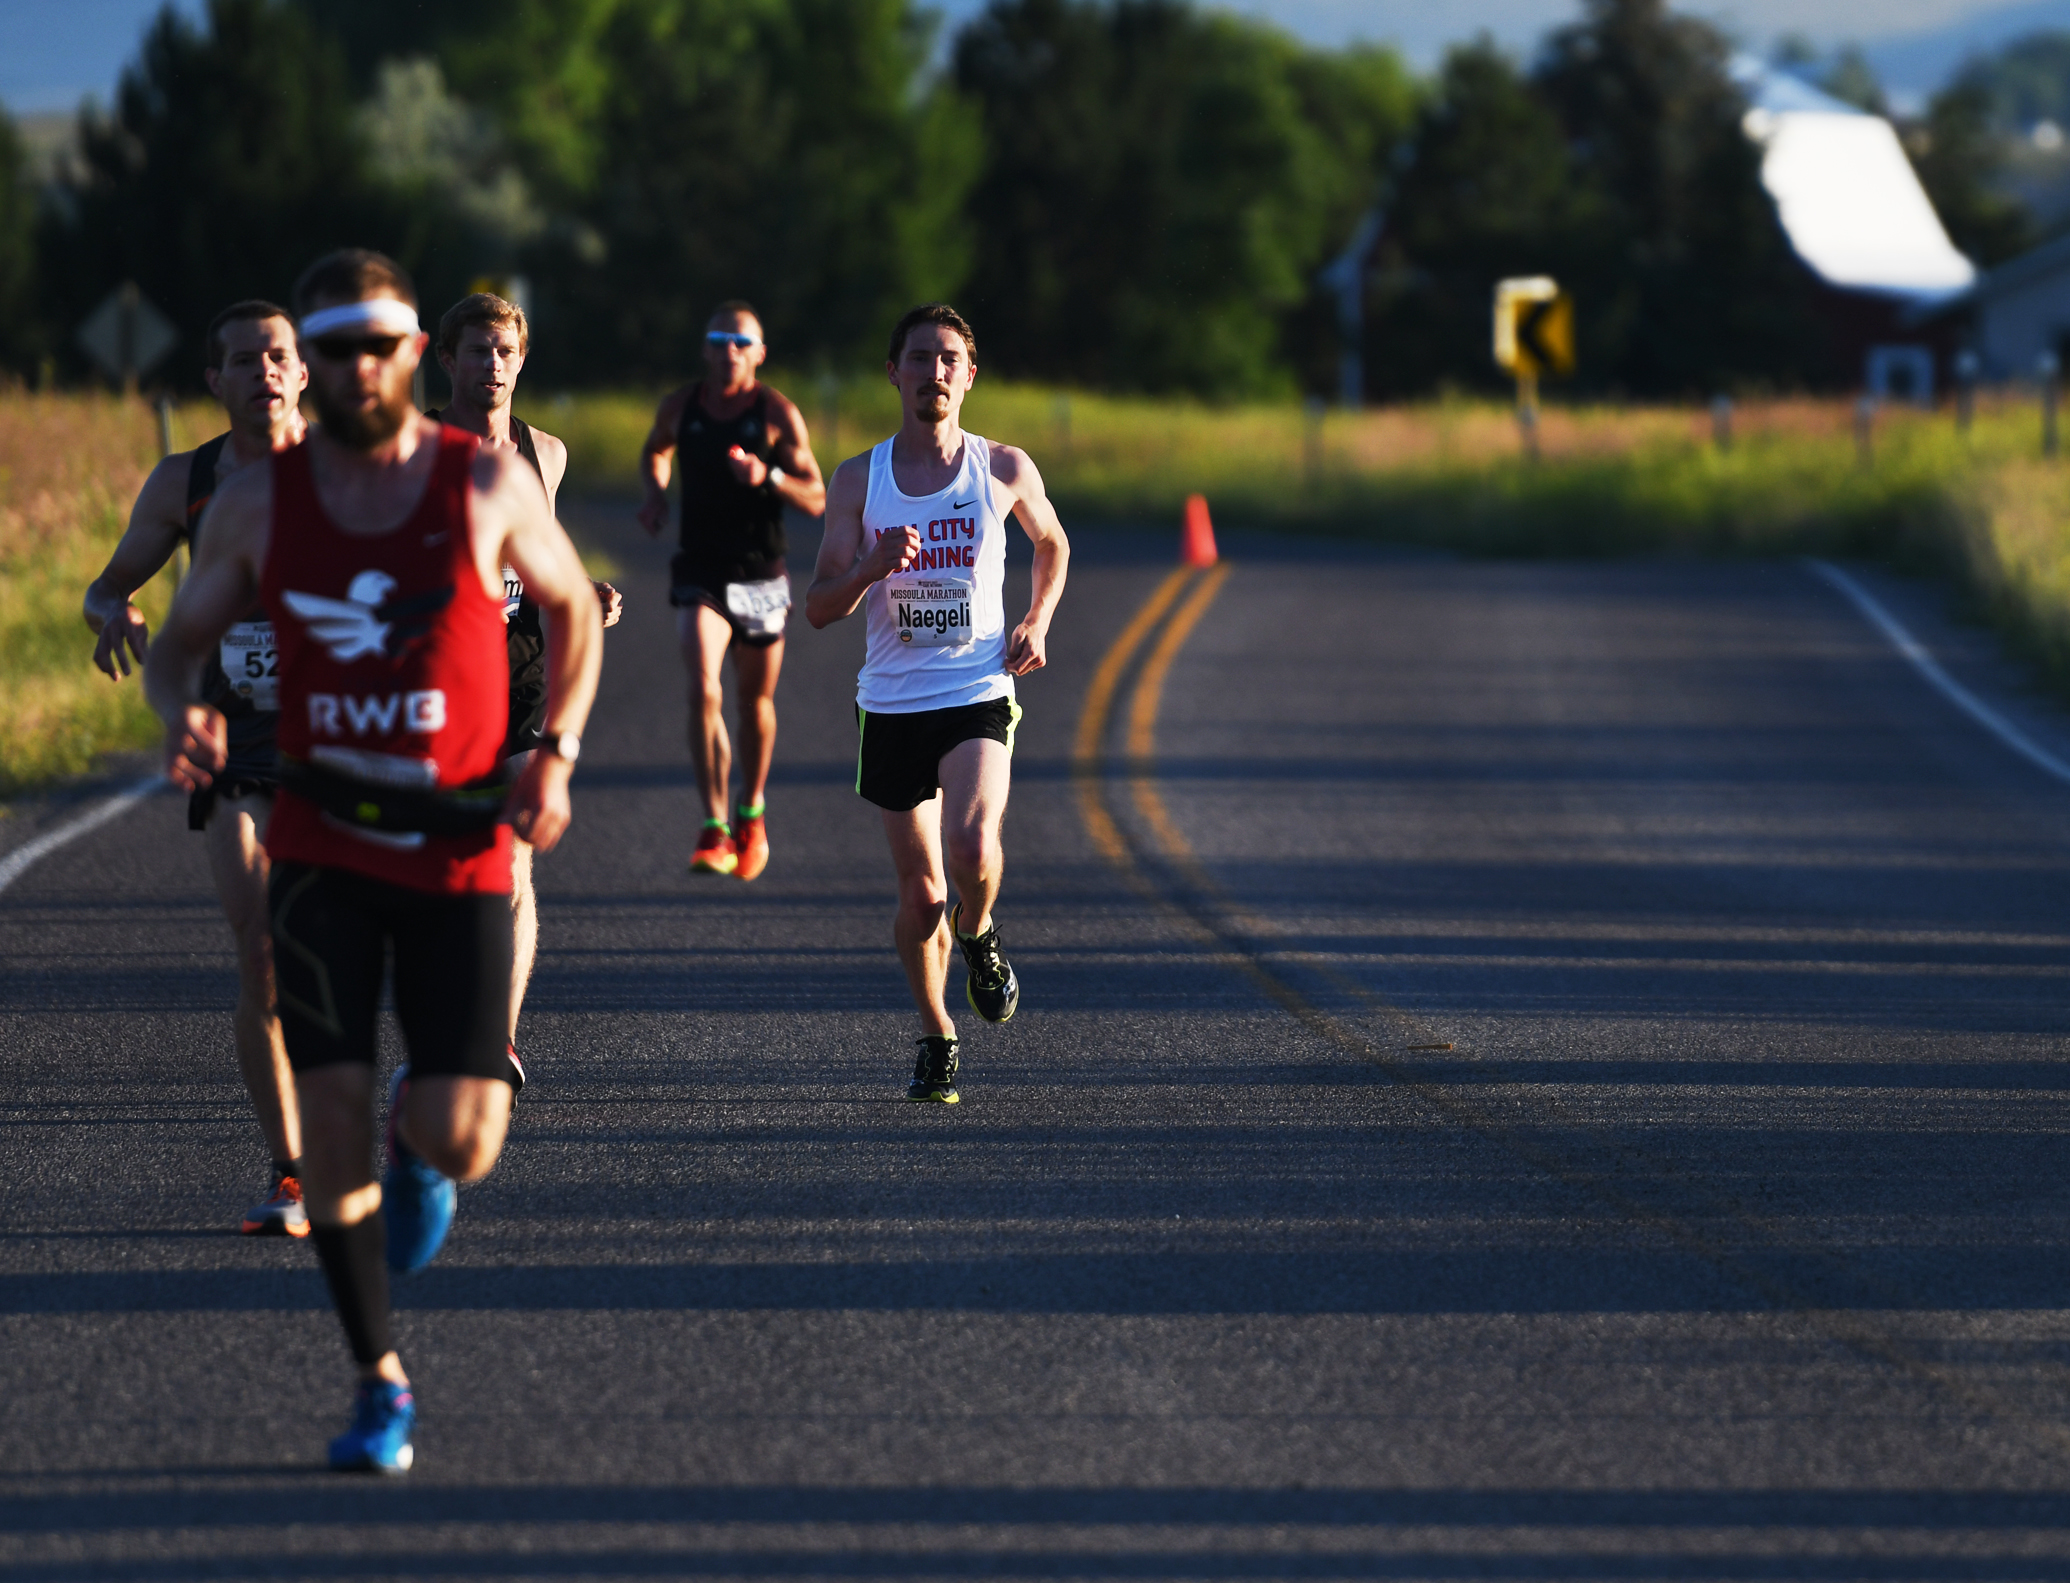 Jacob Naegli , right, from St. Paul, Minn. approaches the Deschamps aid station which marks 8.5 miles down for the marathon runners.